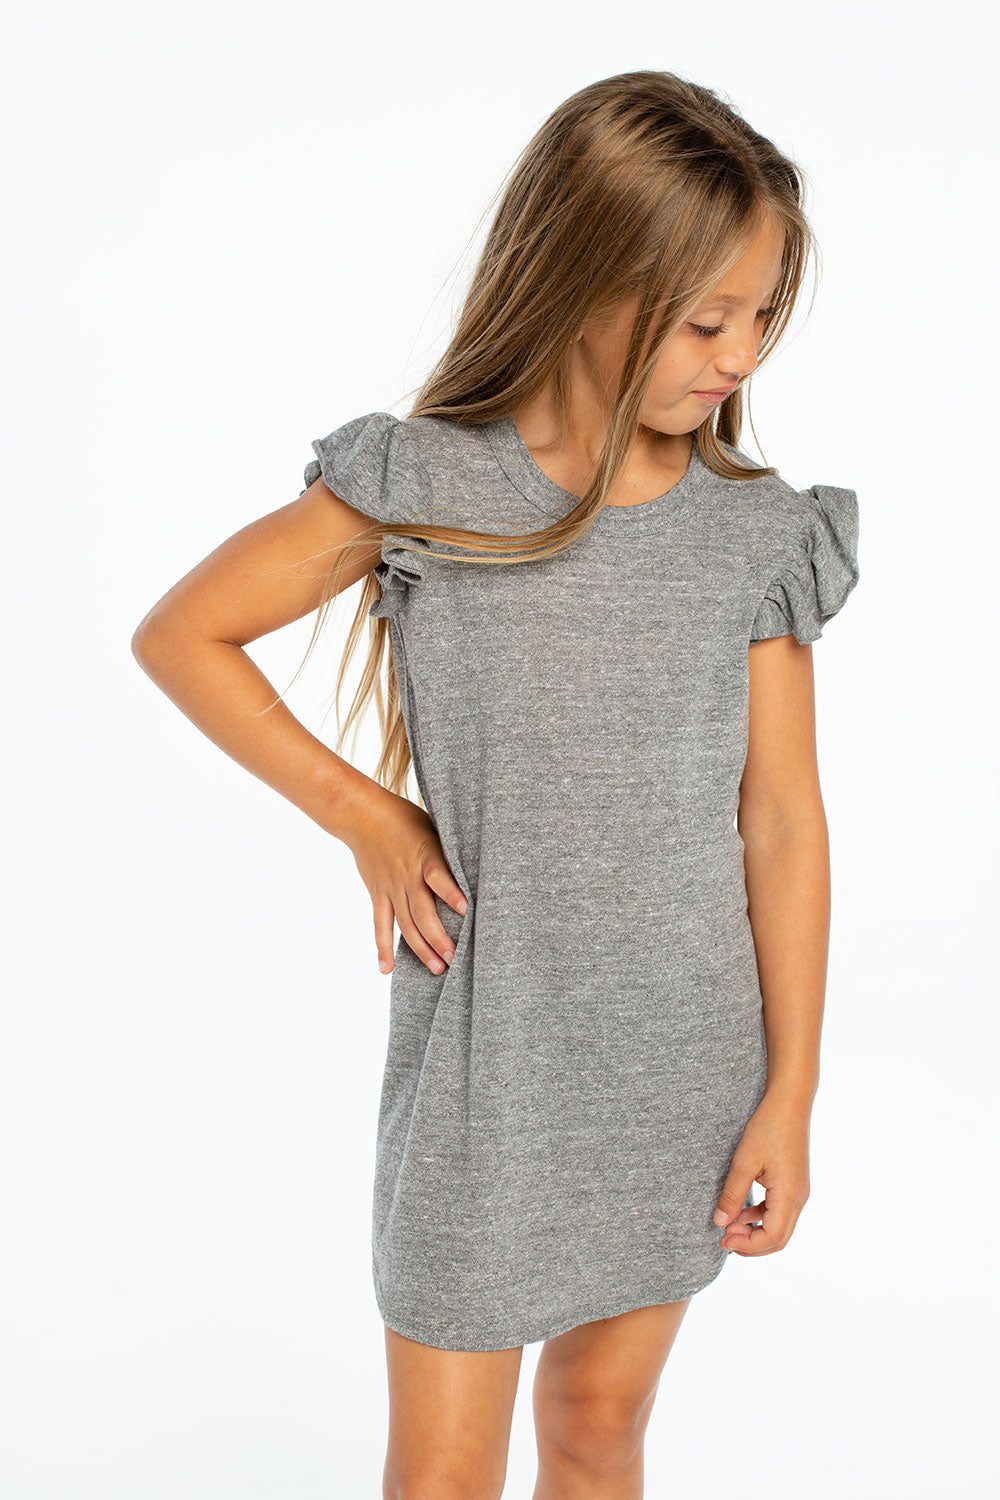 Triblend Flutter Sleeve Shirttail Dress GIRLS chaserbrand4.myshopify.com